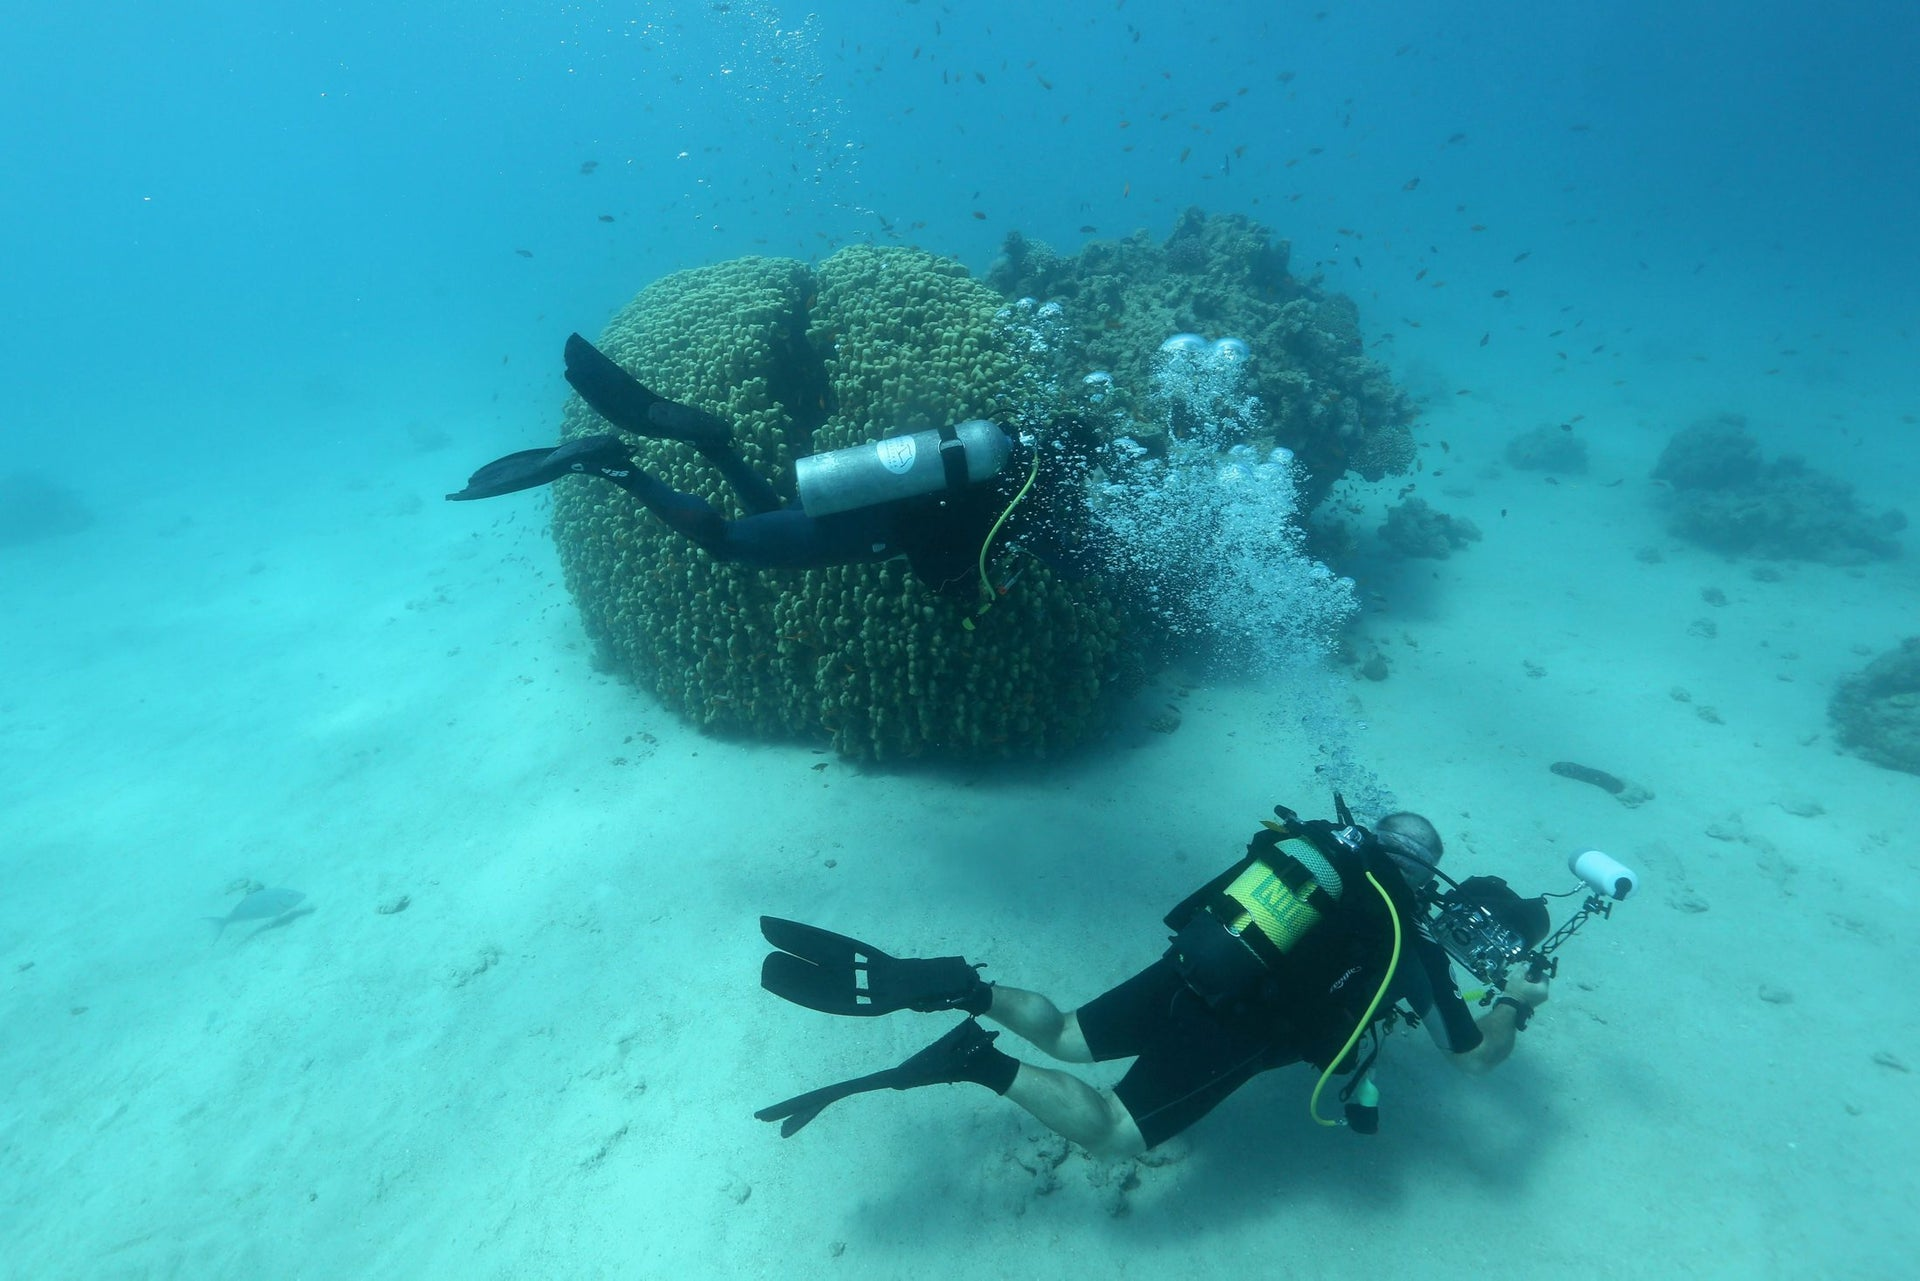 Scuba divers check coral reefs in the Red Sea off the southern Israeli resort city of Eilat on June 12, 2017.